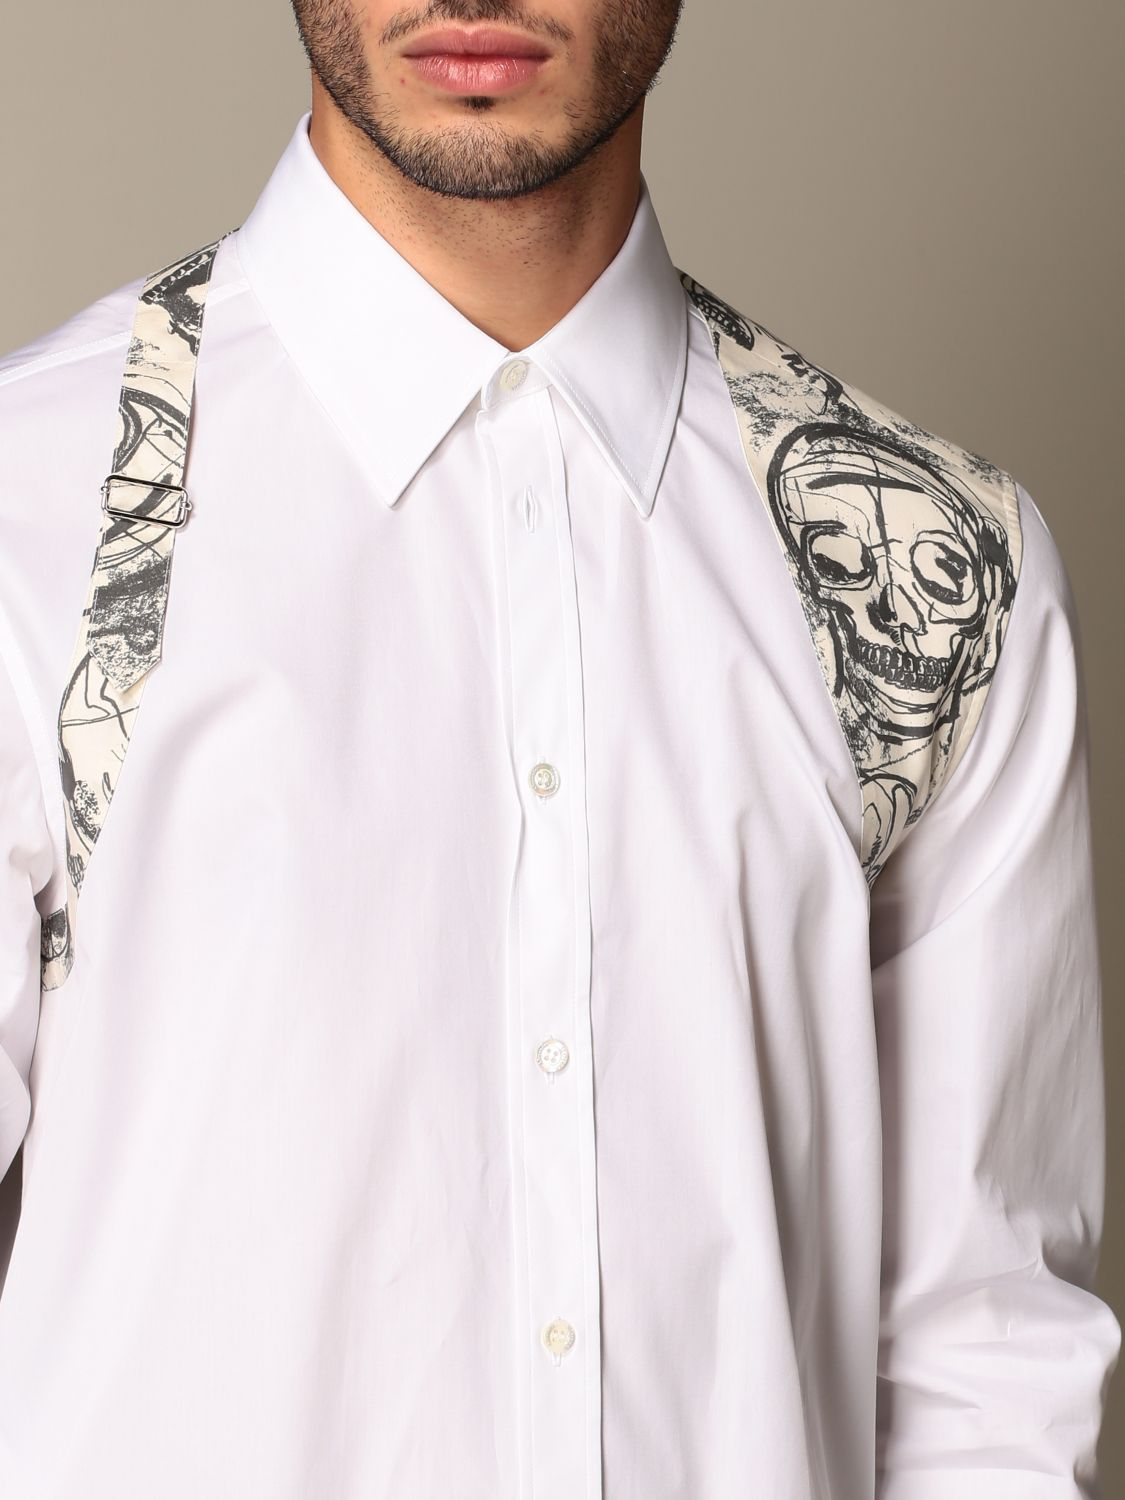 Shirt Alexander Mcqueen: Alexander McQueen shirt with skull print buckle white 5